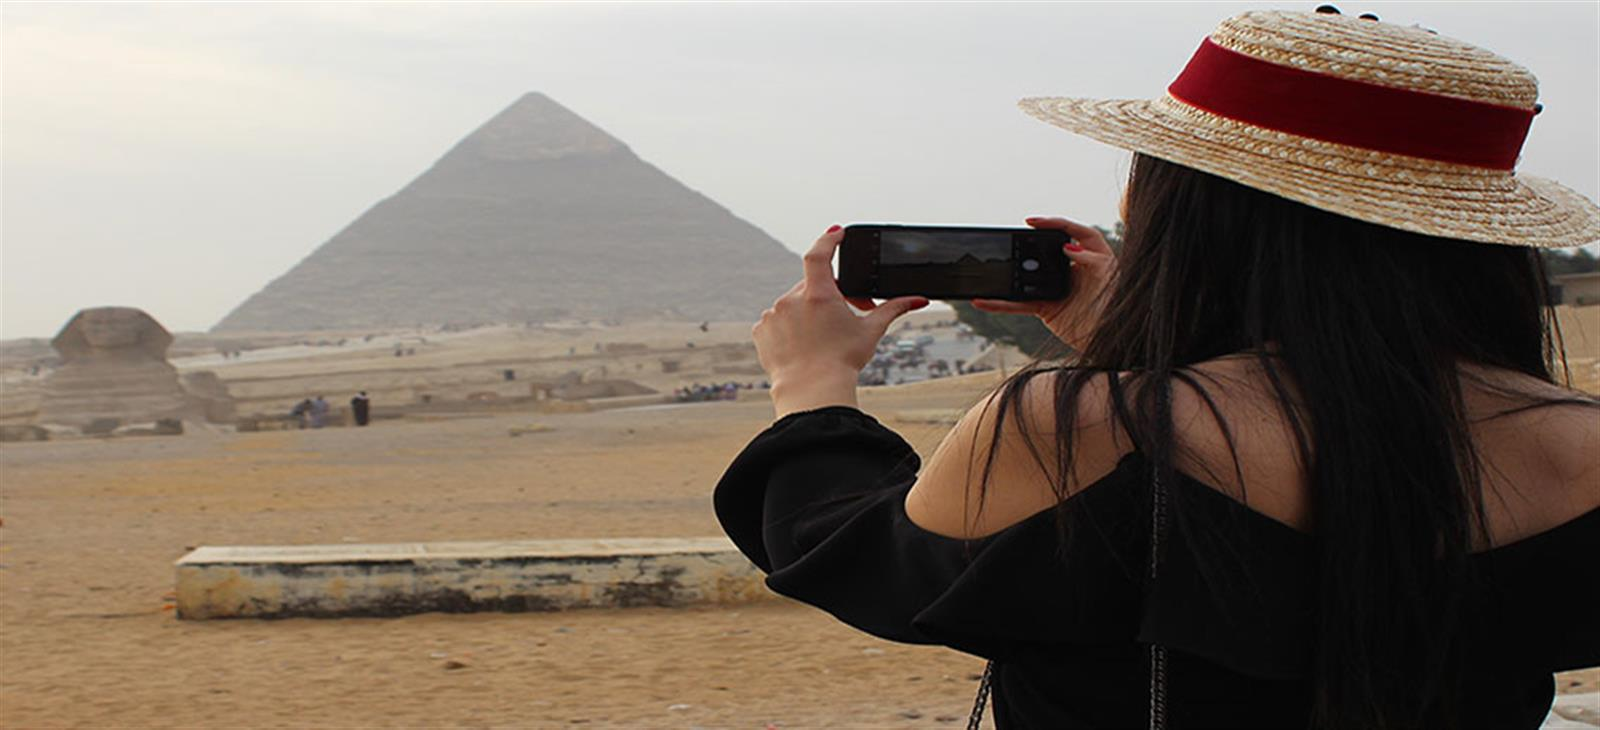 dahab to cairo and luxor tour